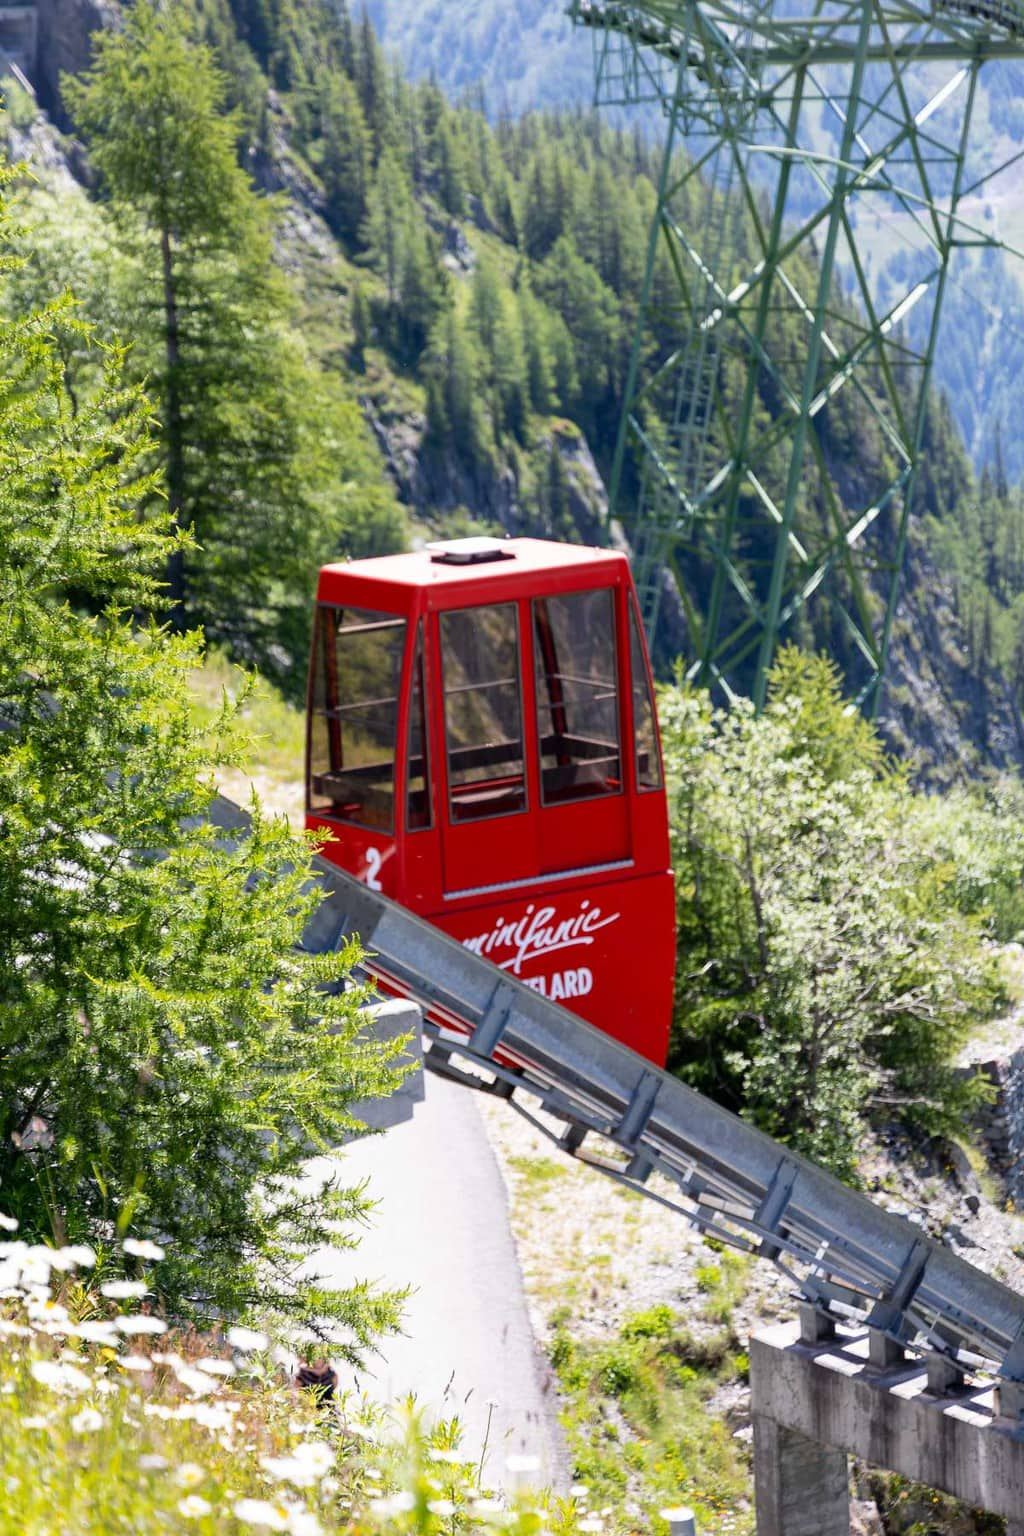 Tram up to the top of one of the mountain meadow areas near Argentiere, France.